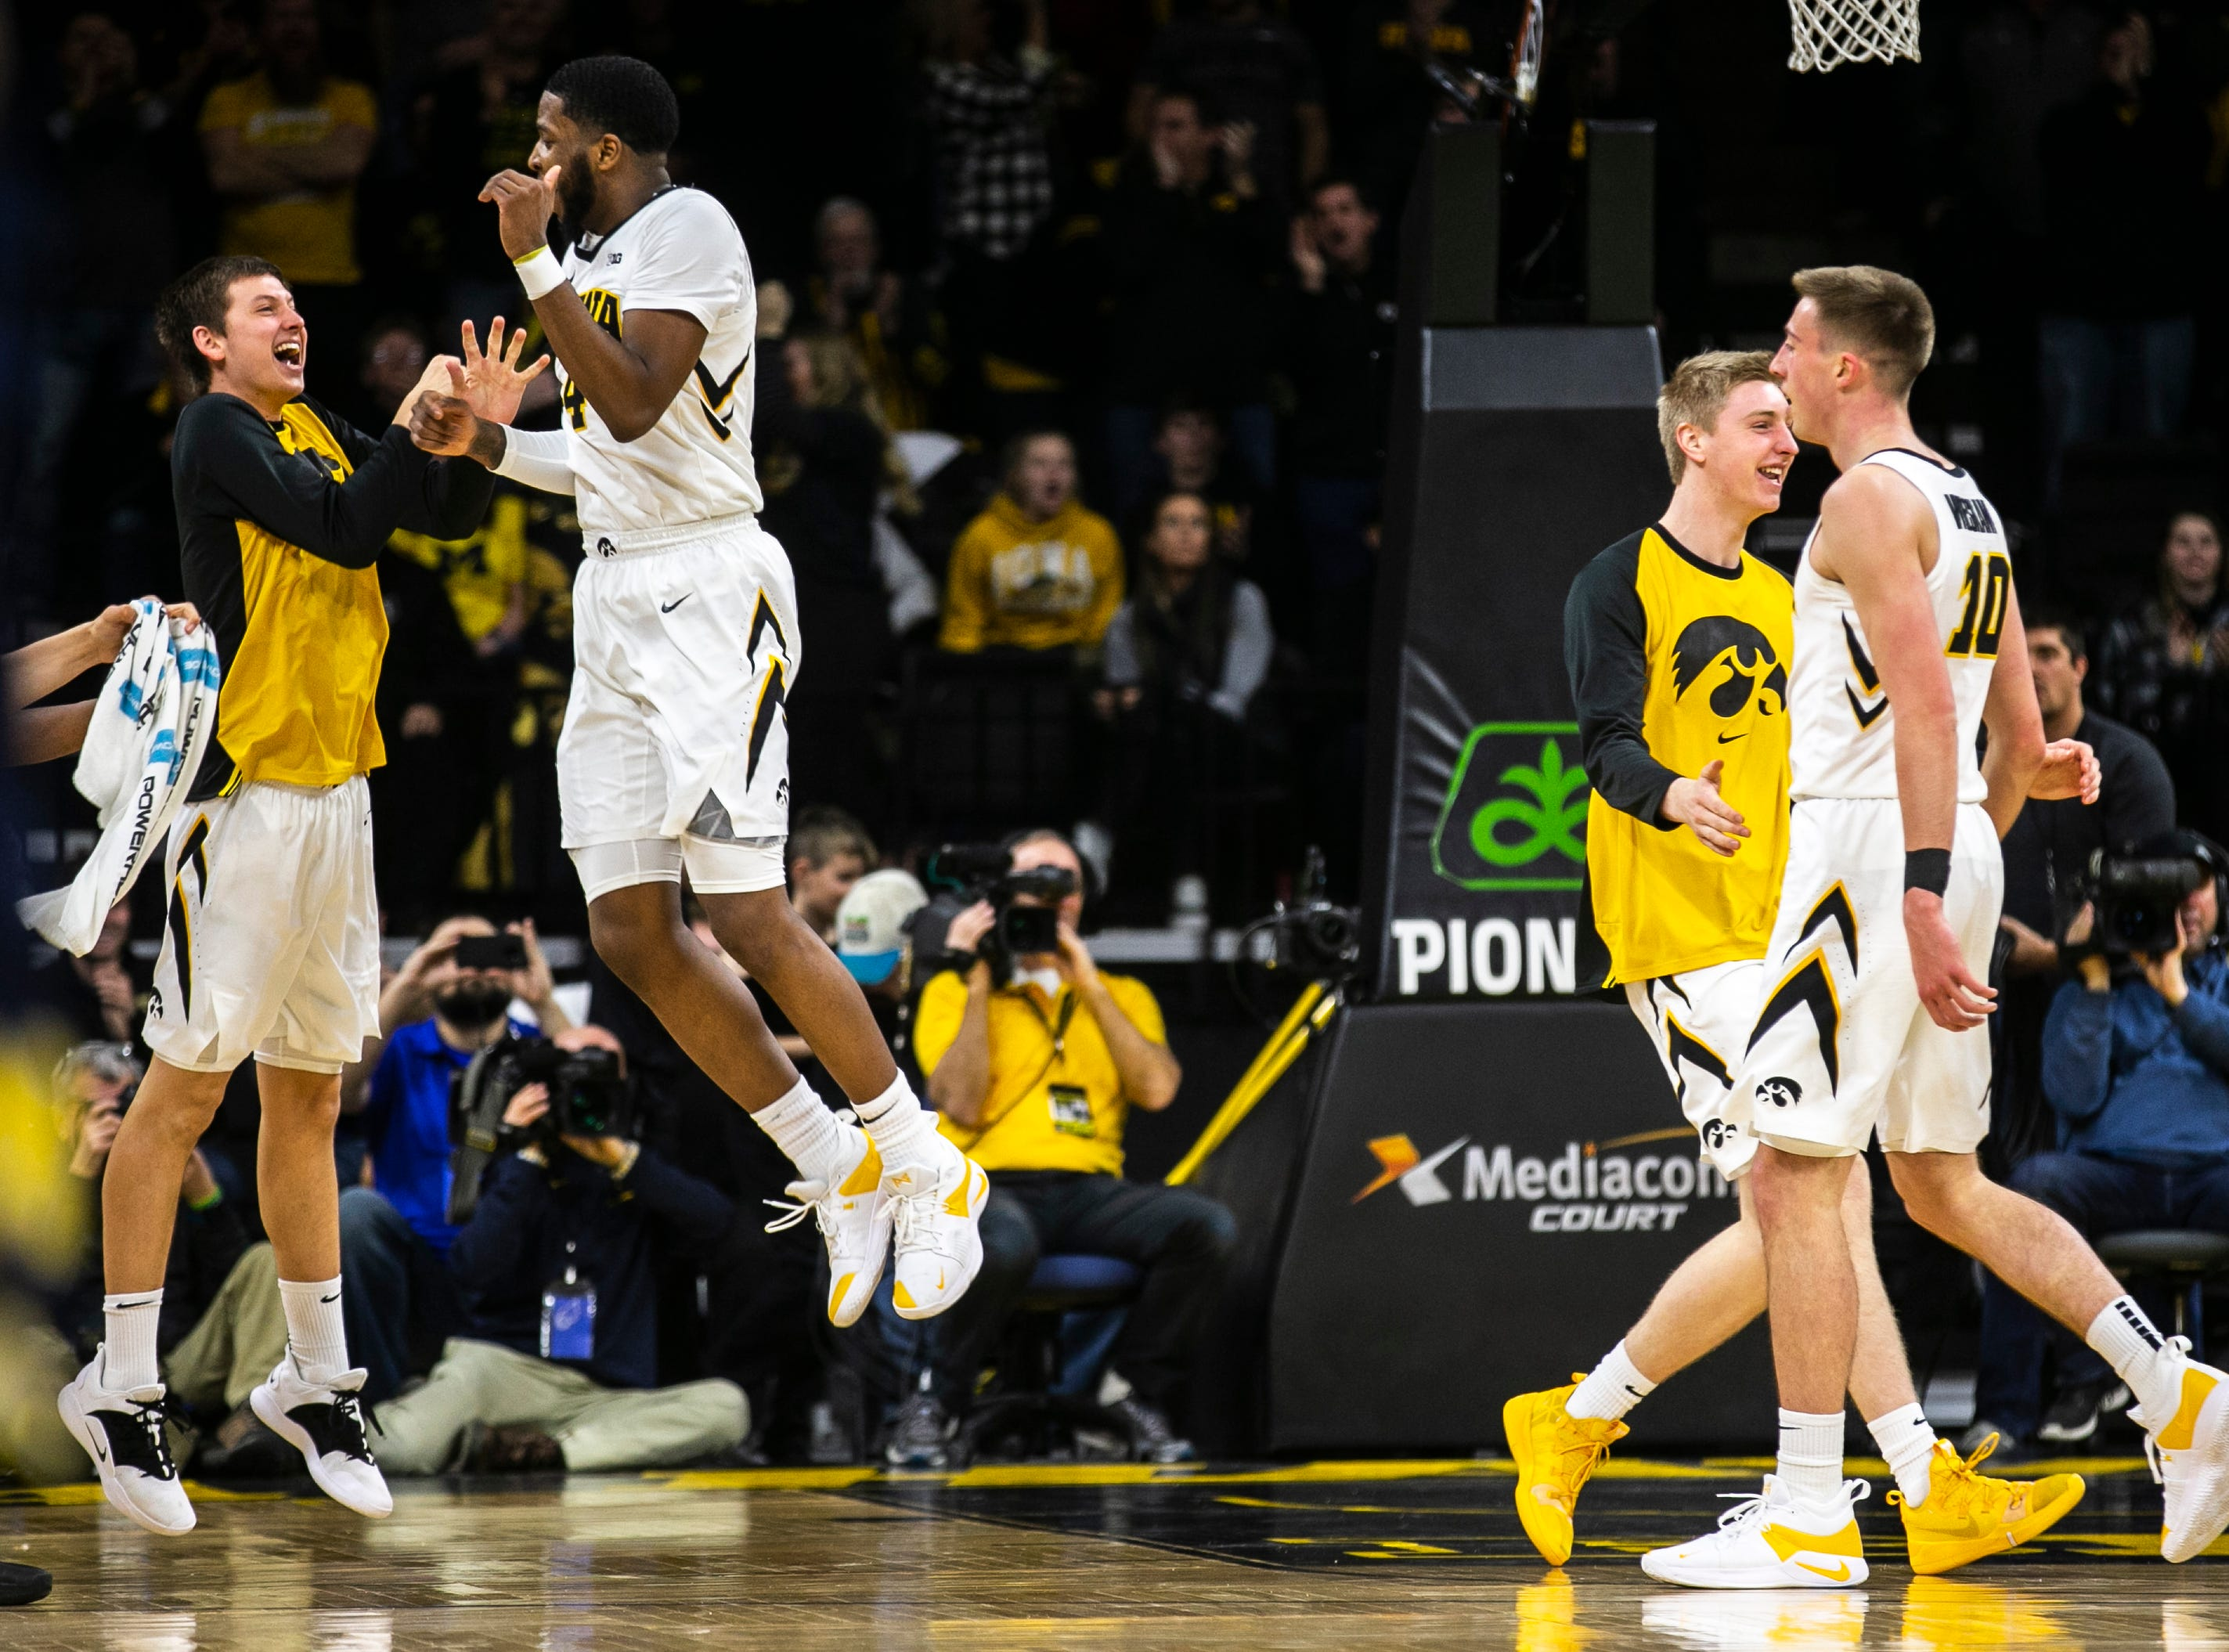 Iowa guard Isaiah Moss (4) celebrates while Austin Ash, far left, while Iowa guard Joe Wieskamp (10) gets a high-five from Michael Baer heading into a timeout during a NCAA Big Ten Conference men's basketball game on Friday, Feb. 1, 2019, at Carver-Hawkeye Arena in Iowa City, Iowa.